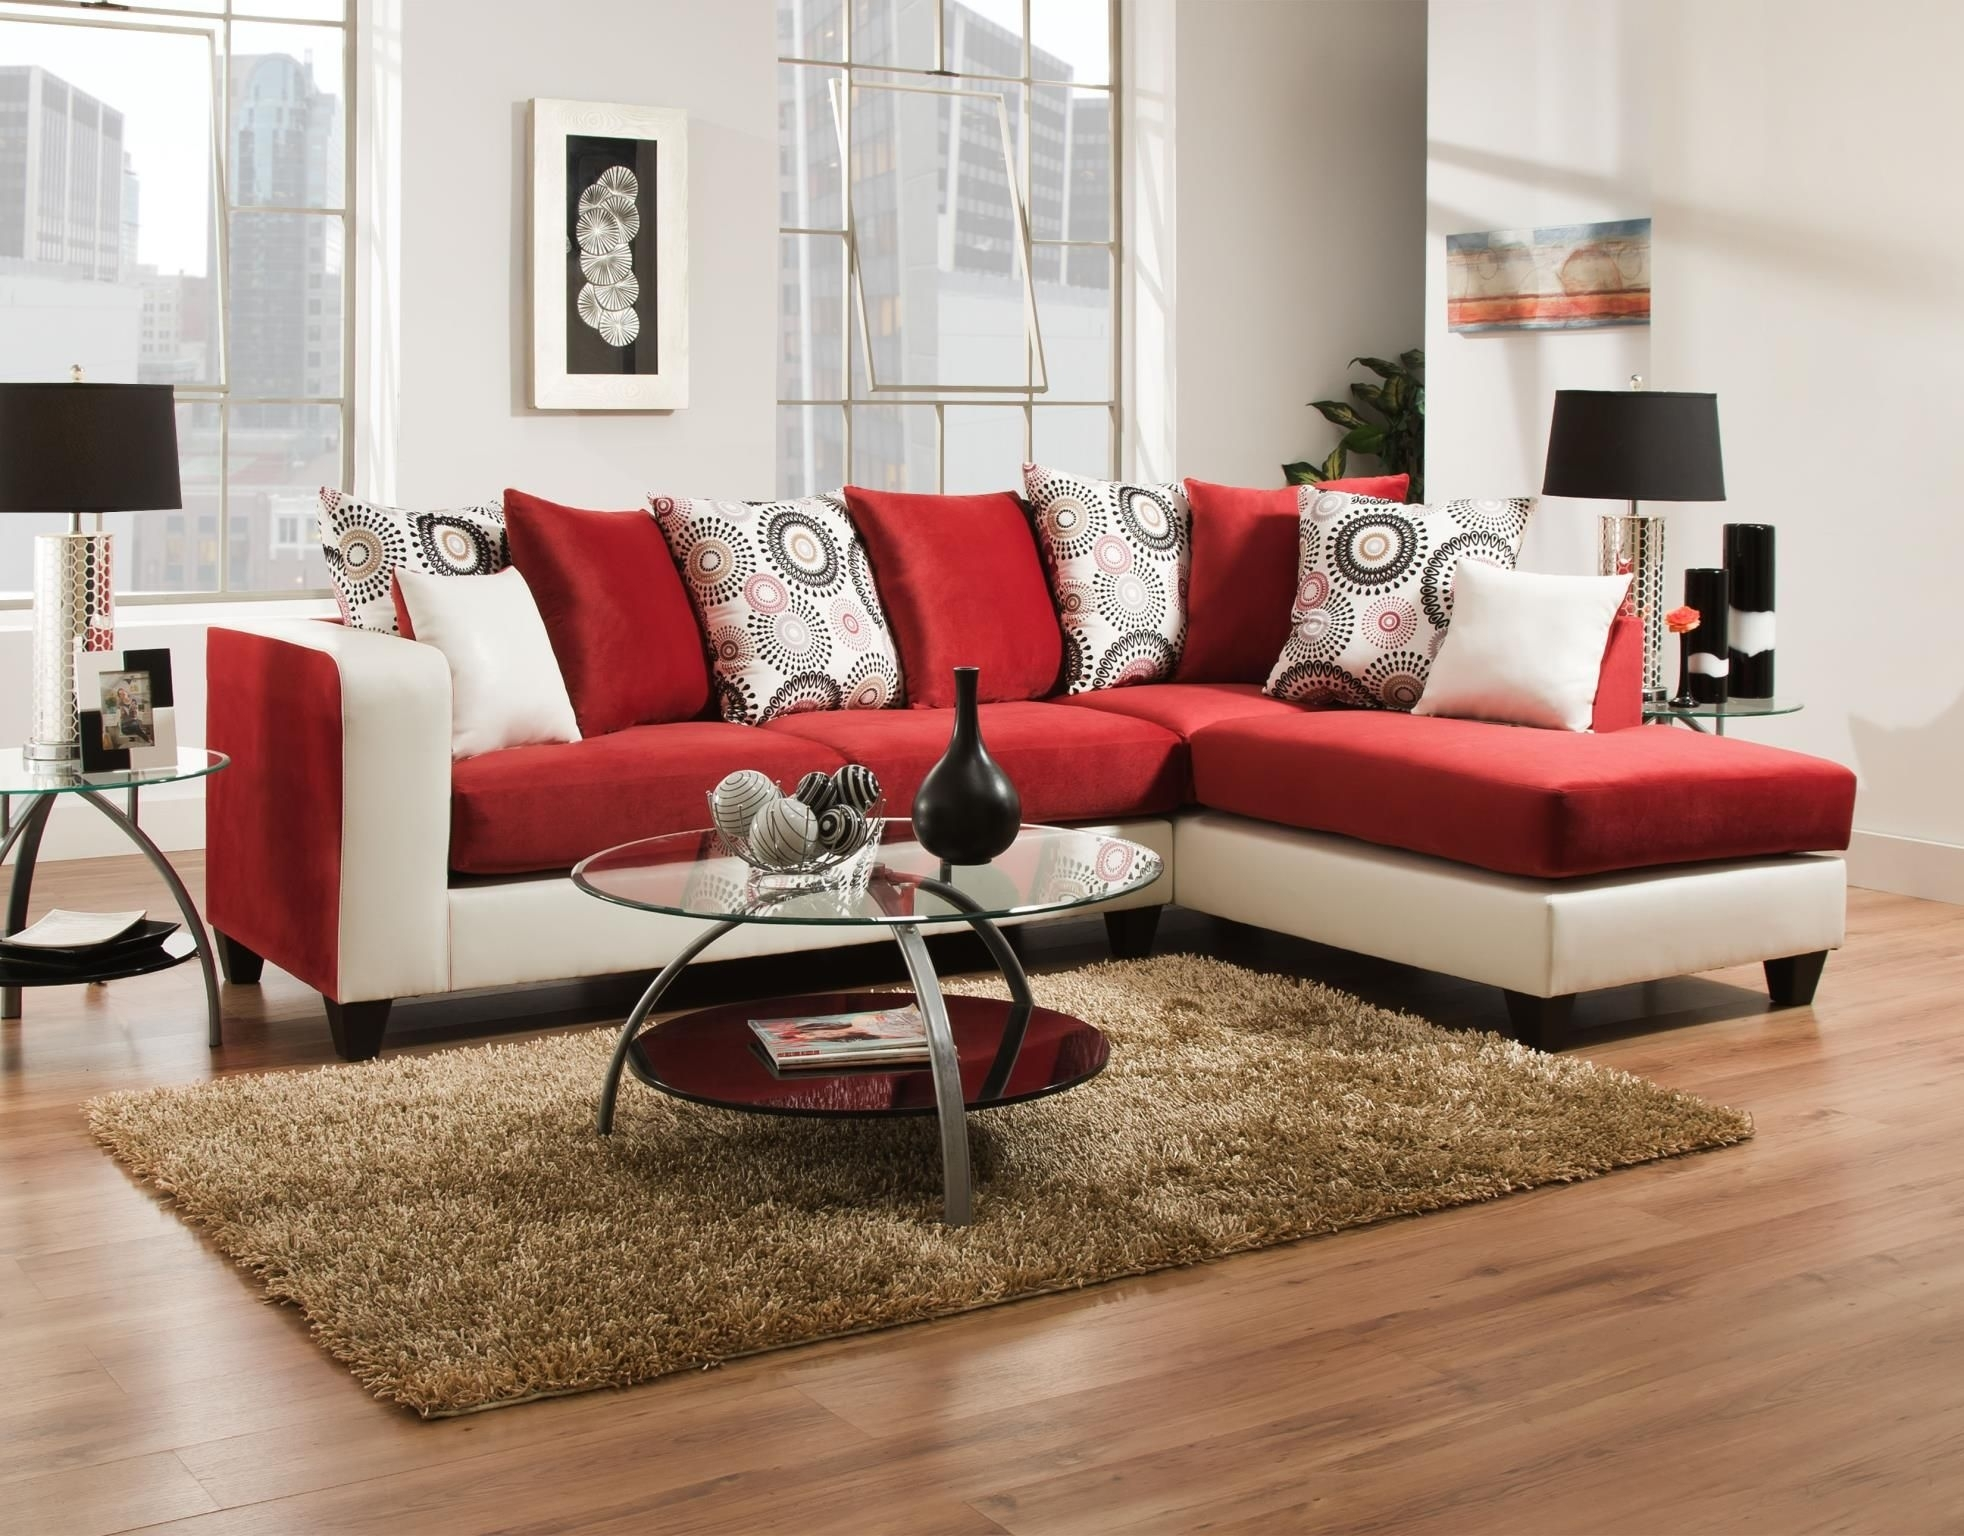 Delta Furniture 4124 03 Living Room Set | Living Room Furniture Pertaining To Tampa Fl Sectional Sofas (View 1 of 10)